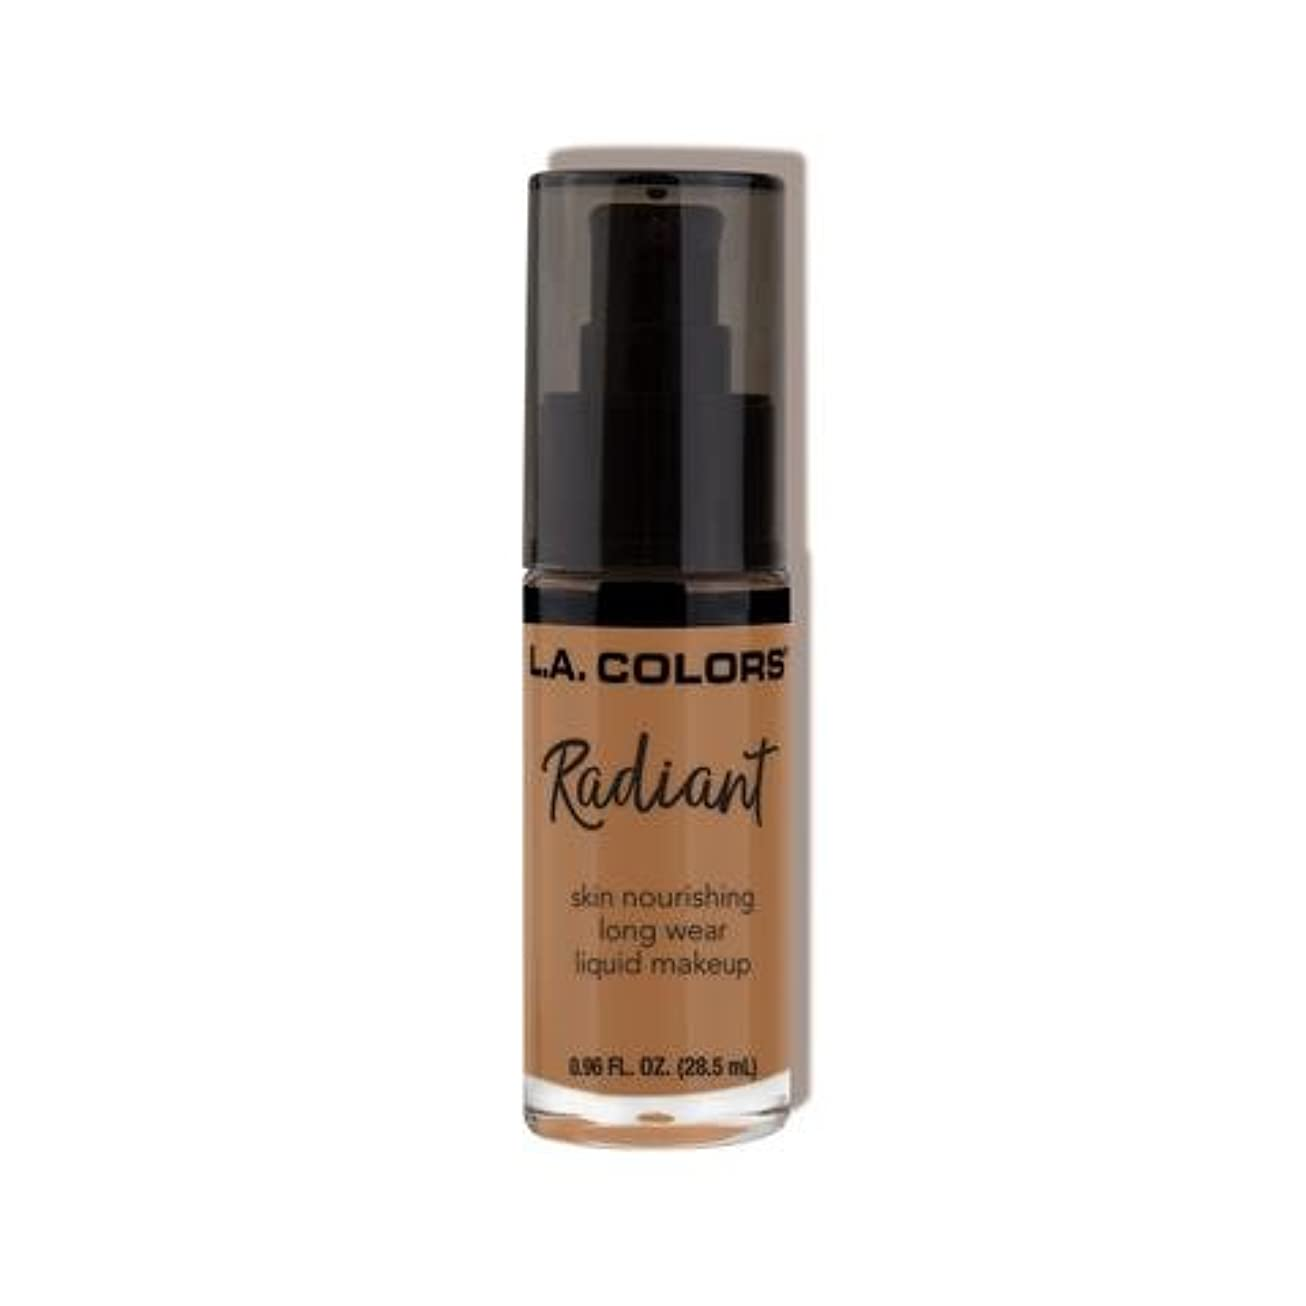 ジャニス伝統的地域(3 Pack) L.A. COLORS Radiant Liquid Makeup - Chestnut (並行輸入品)